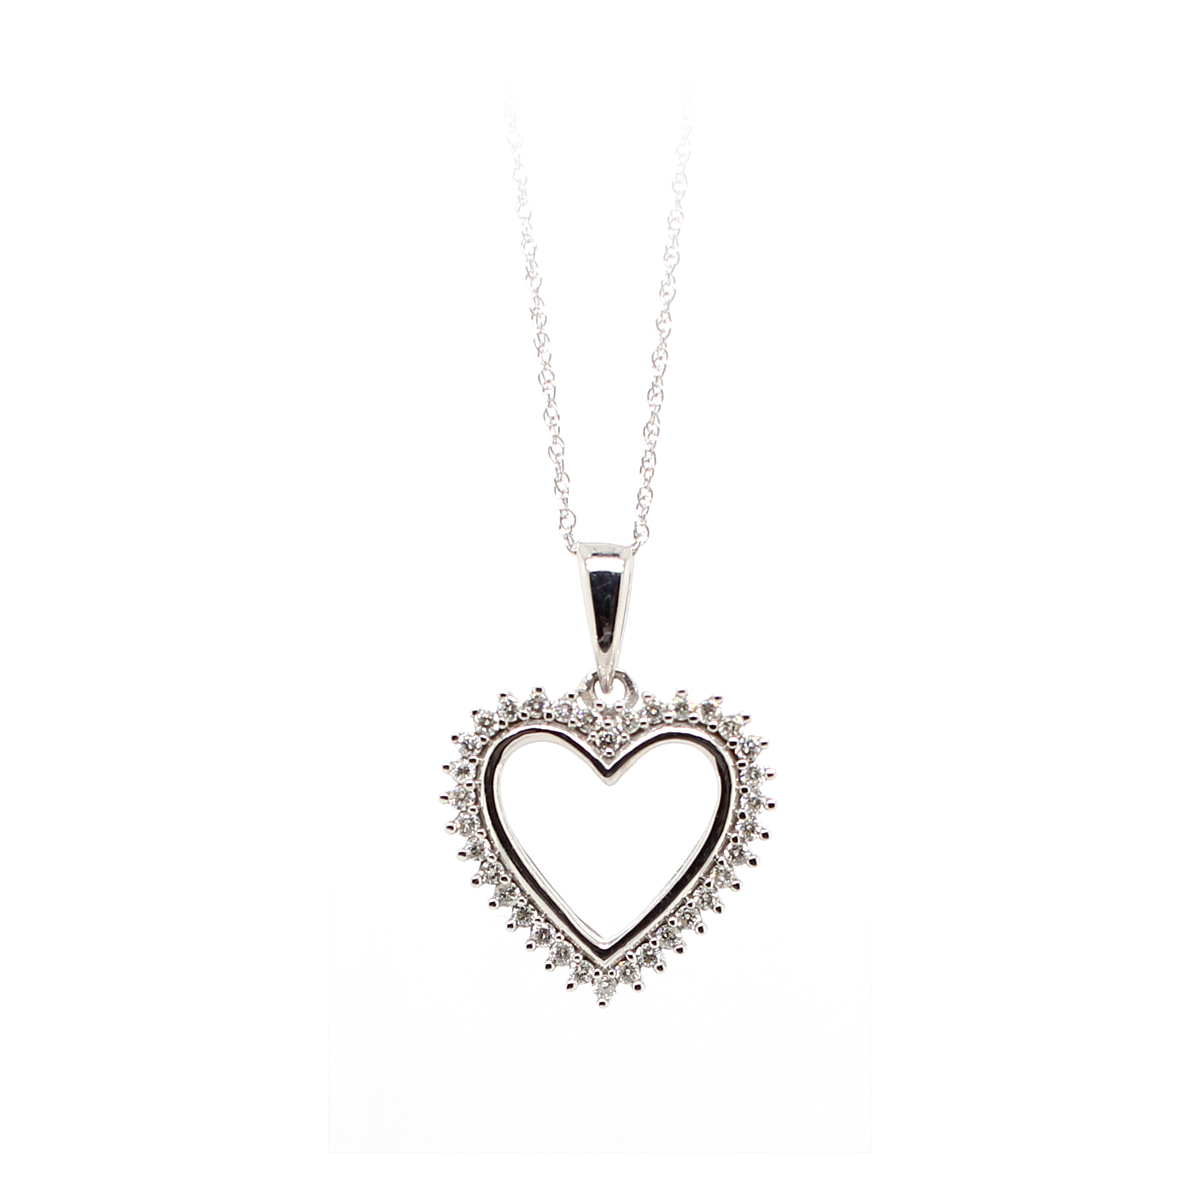 10 Karat White Gold Diamond Cutout Heart Pendant Necklace